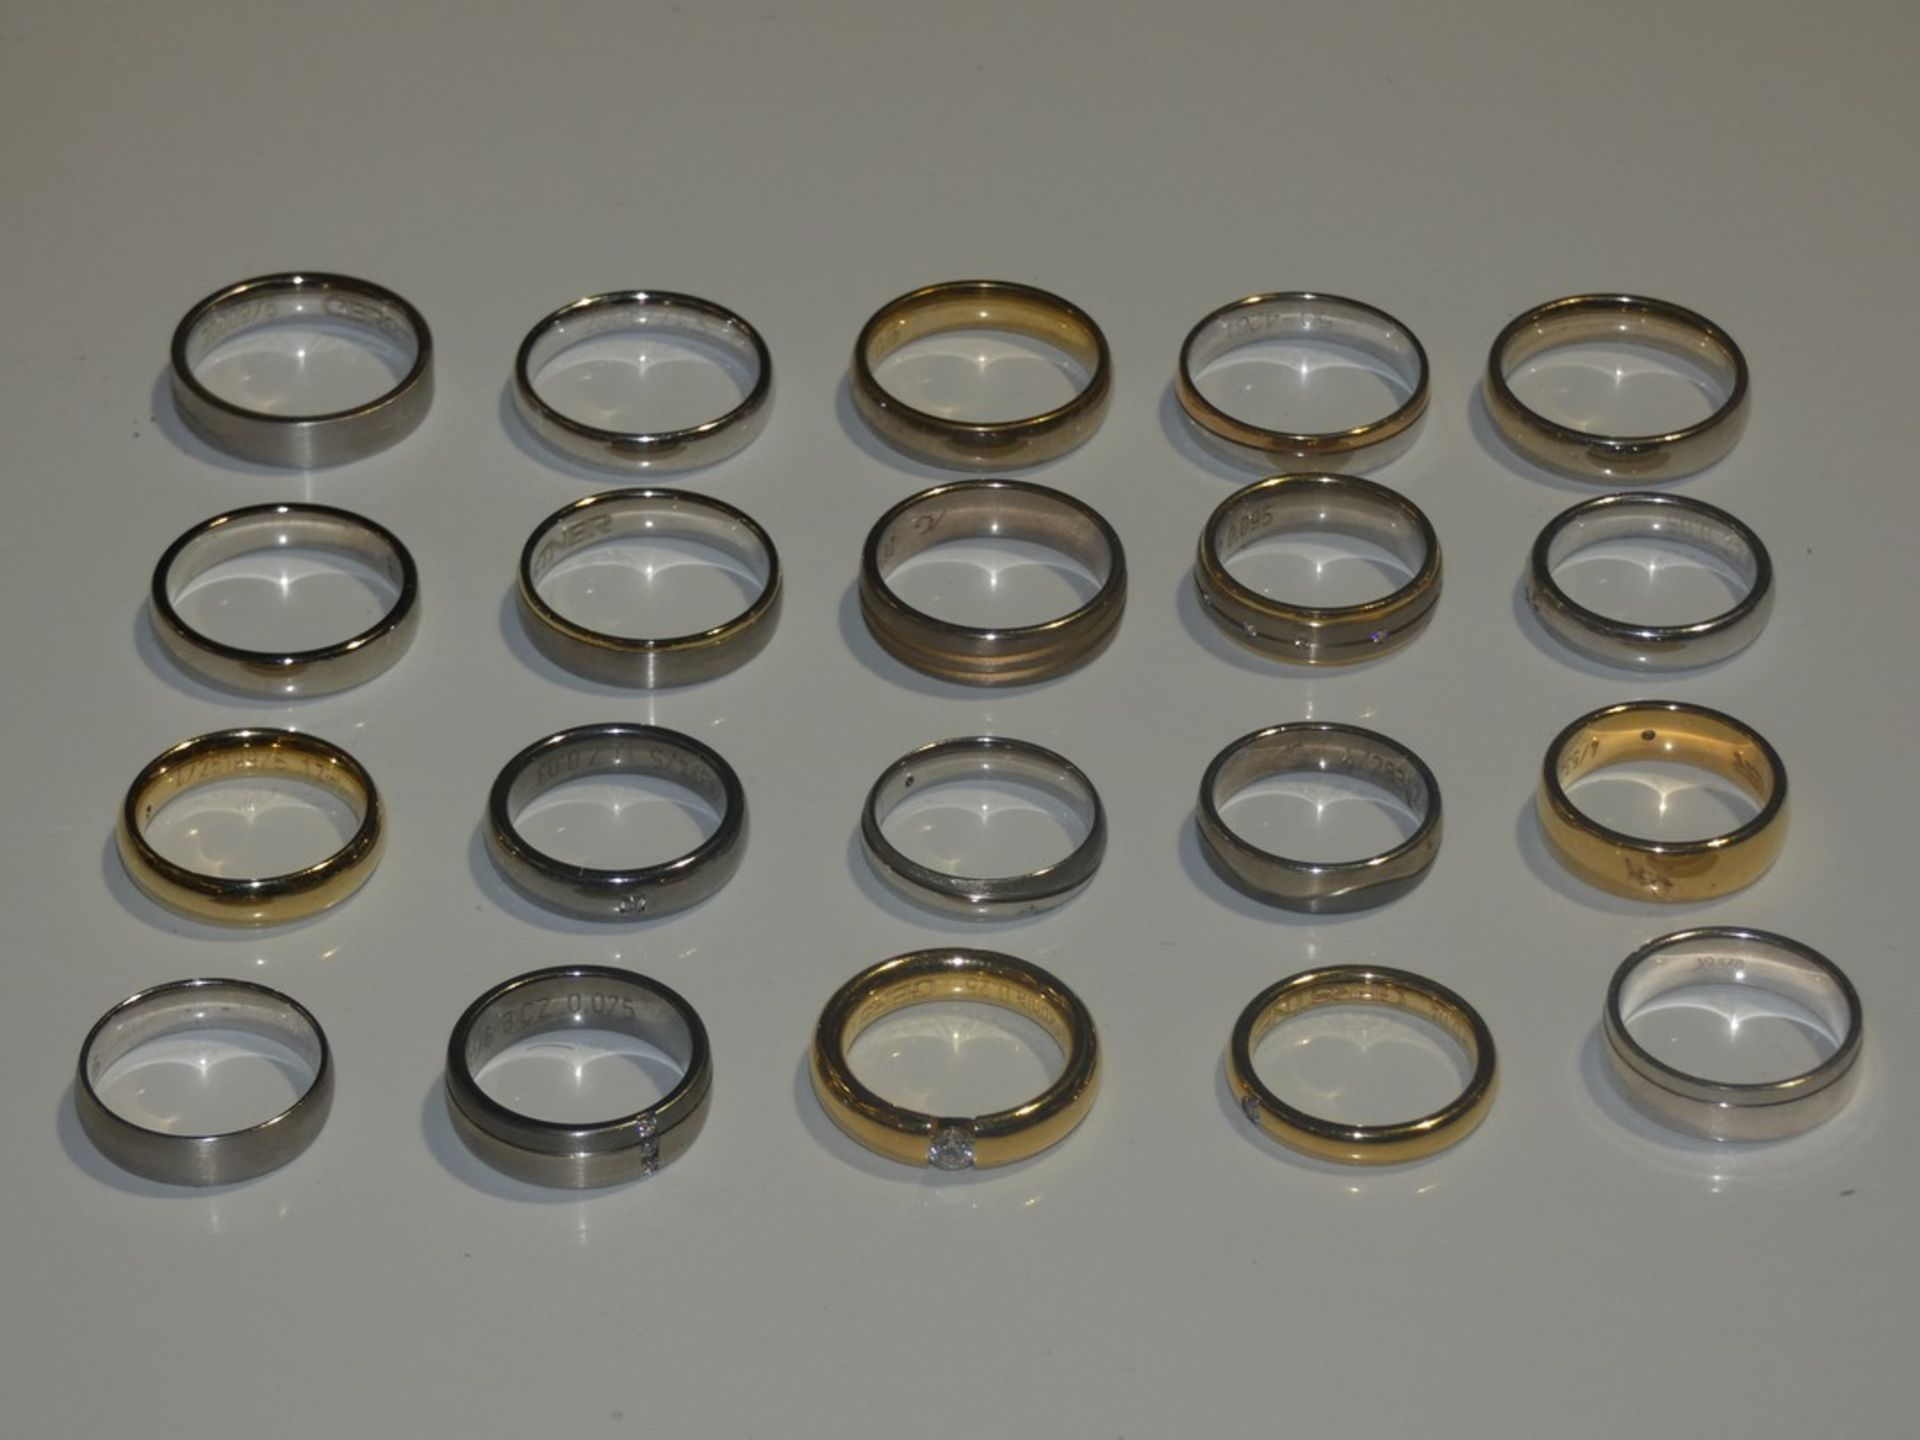 Lot 28 - Lot to Contain 20 Gestner Style Desginer Shoe Piece Wedding Rings in Assorted Sizes and Styles